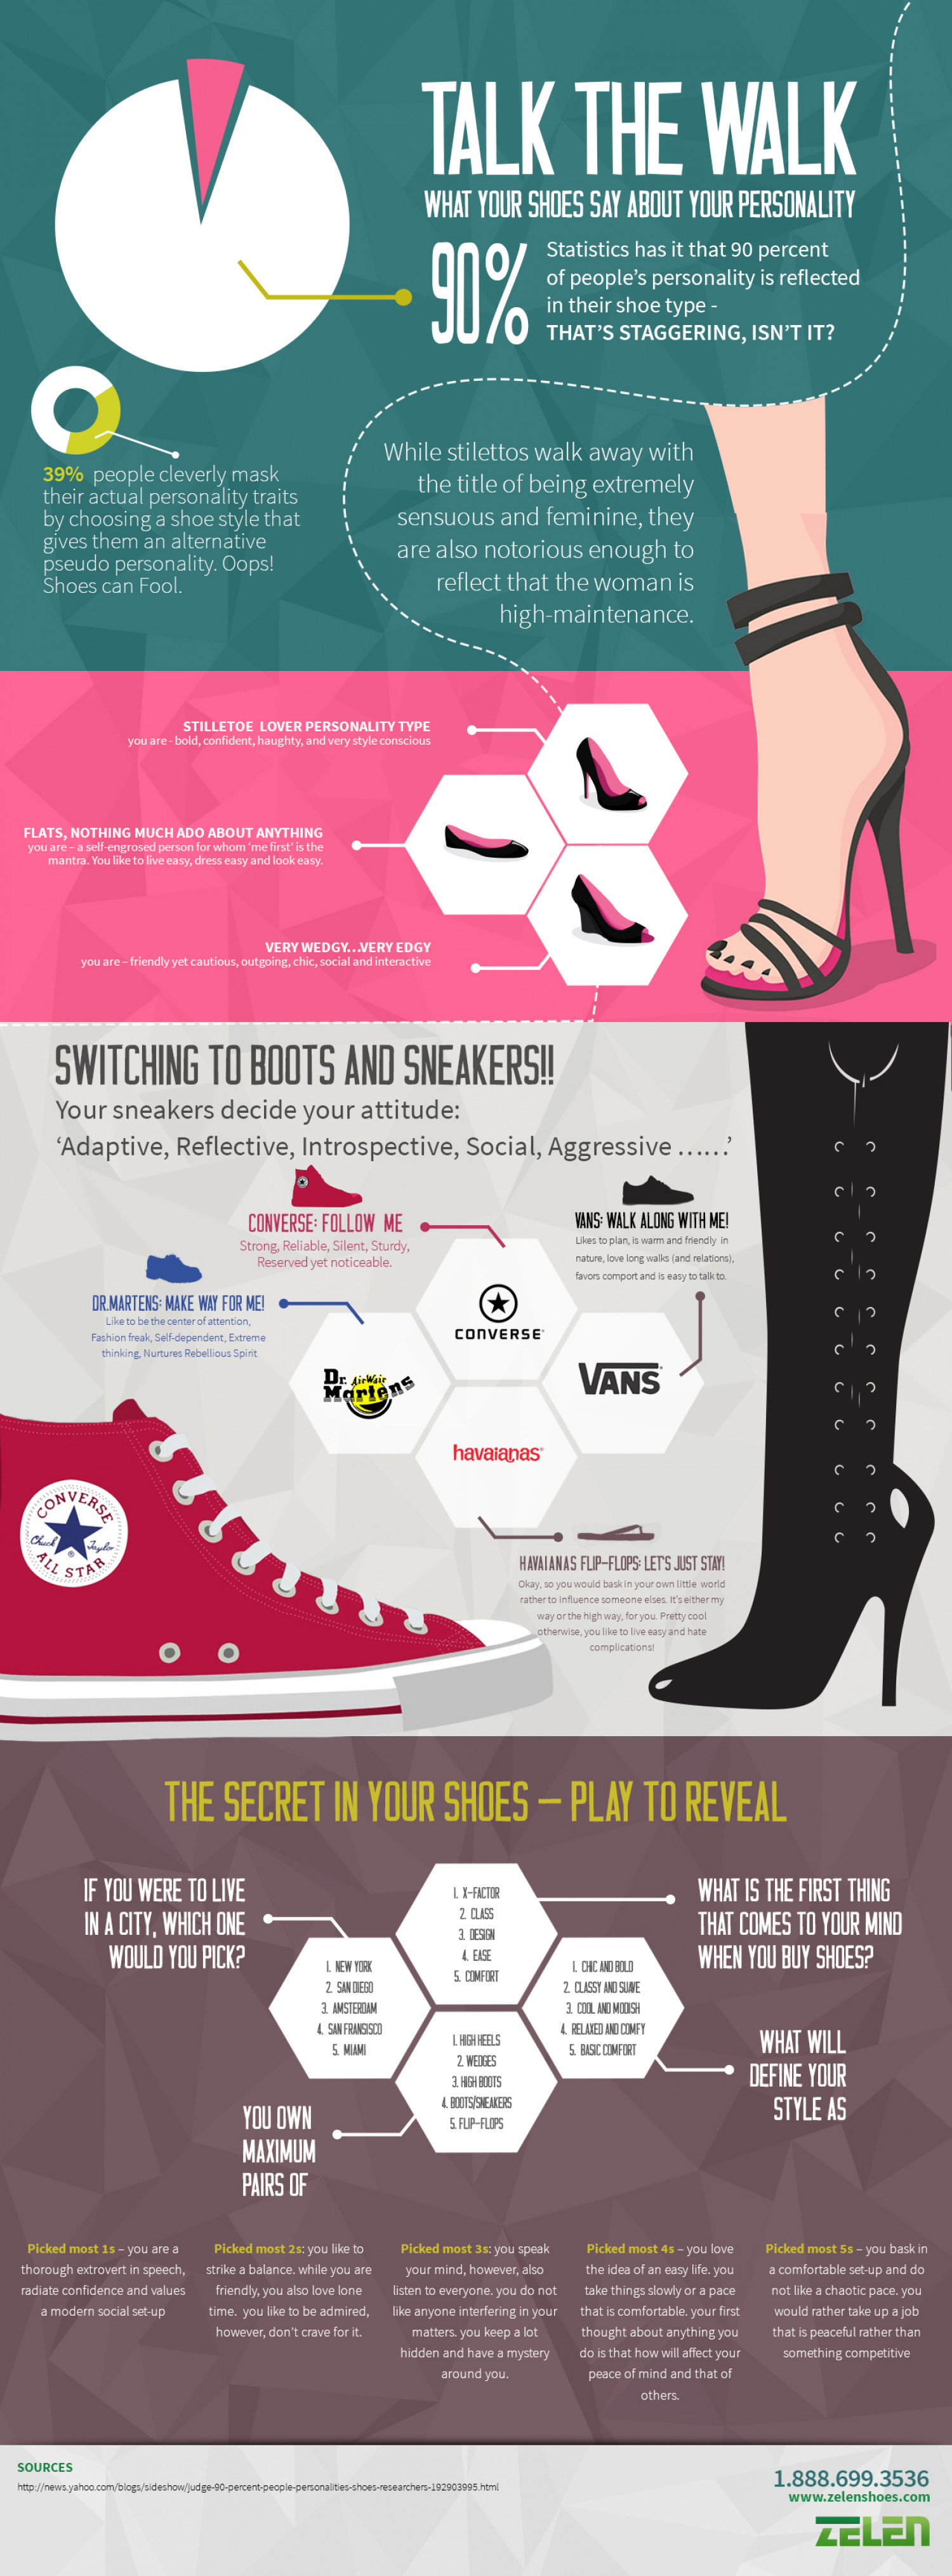 Talk the Walk: What Your Shoes Say about Your Personality Infographic